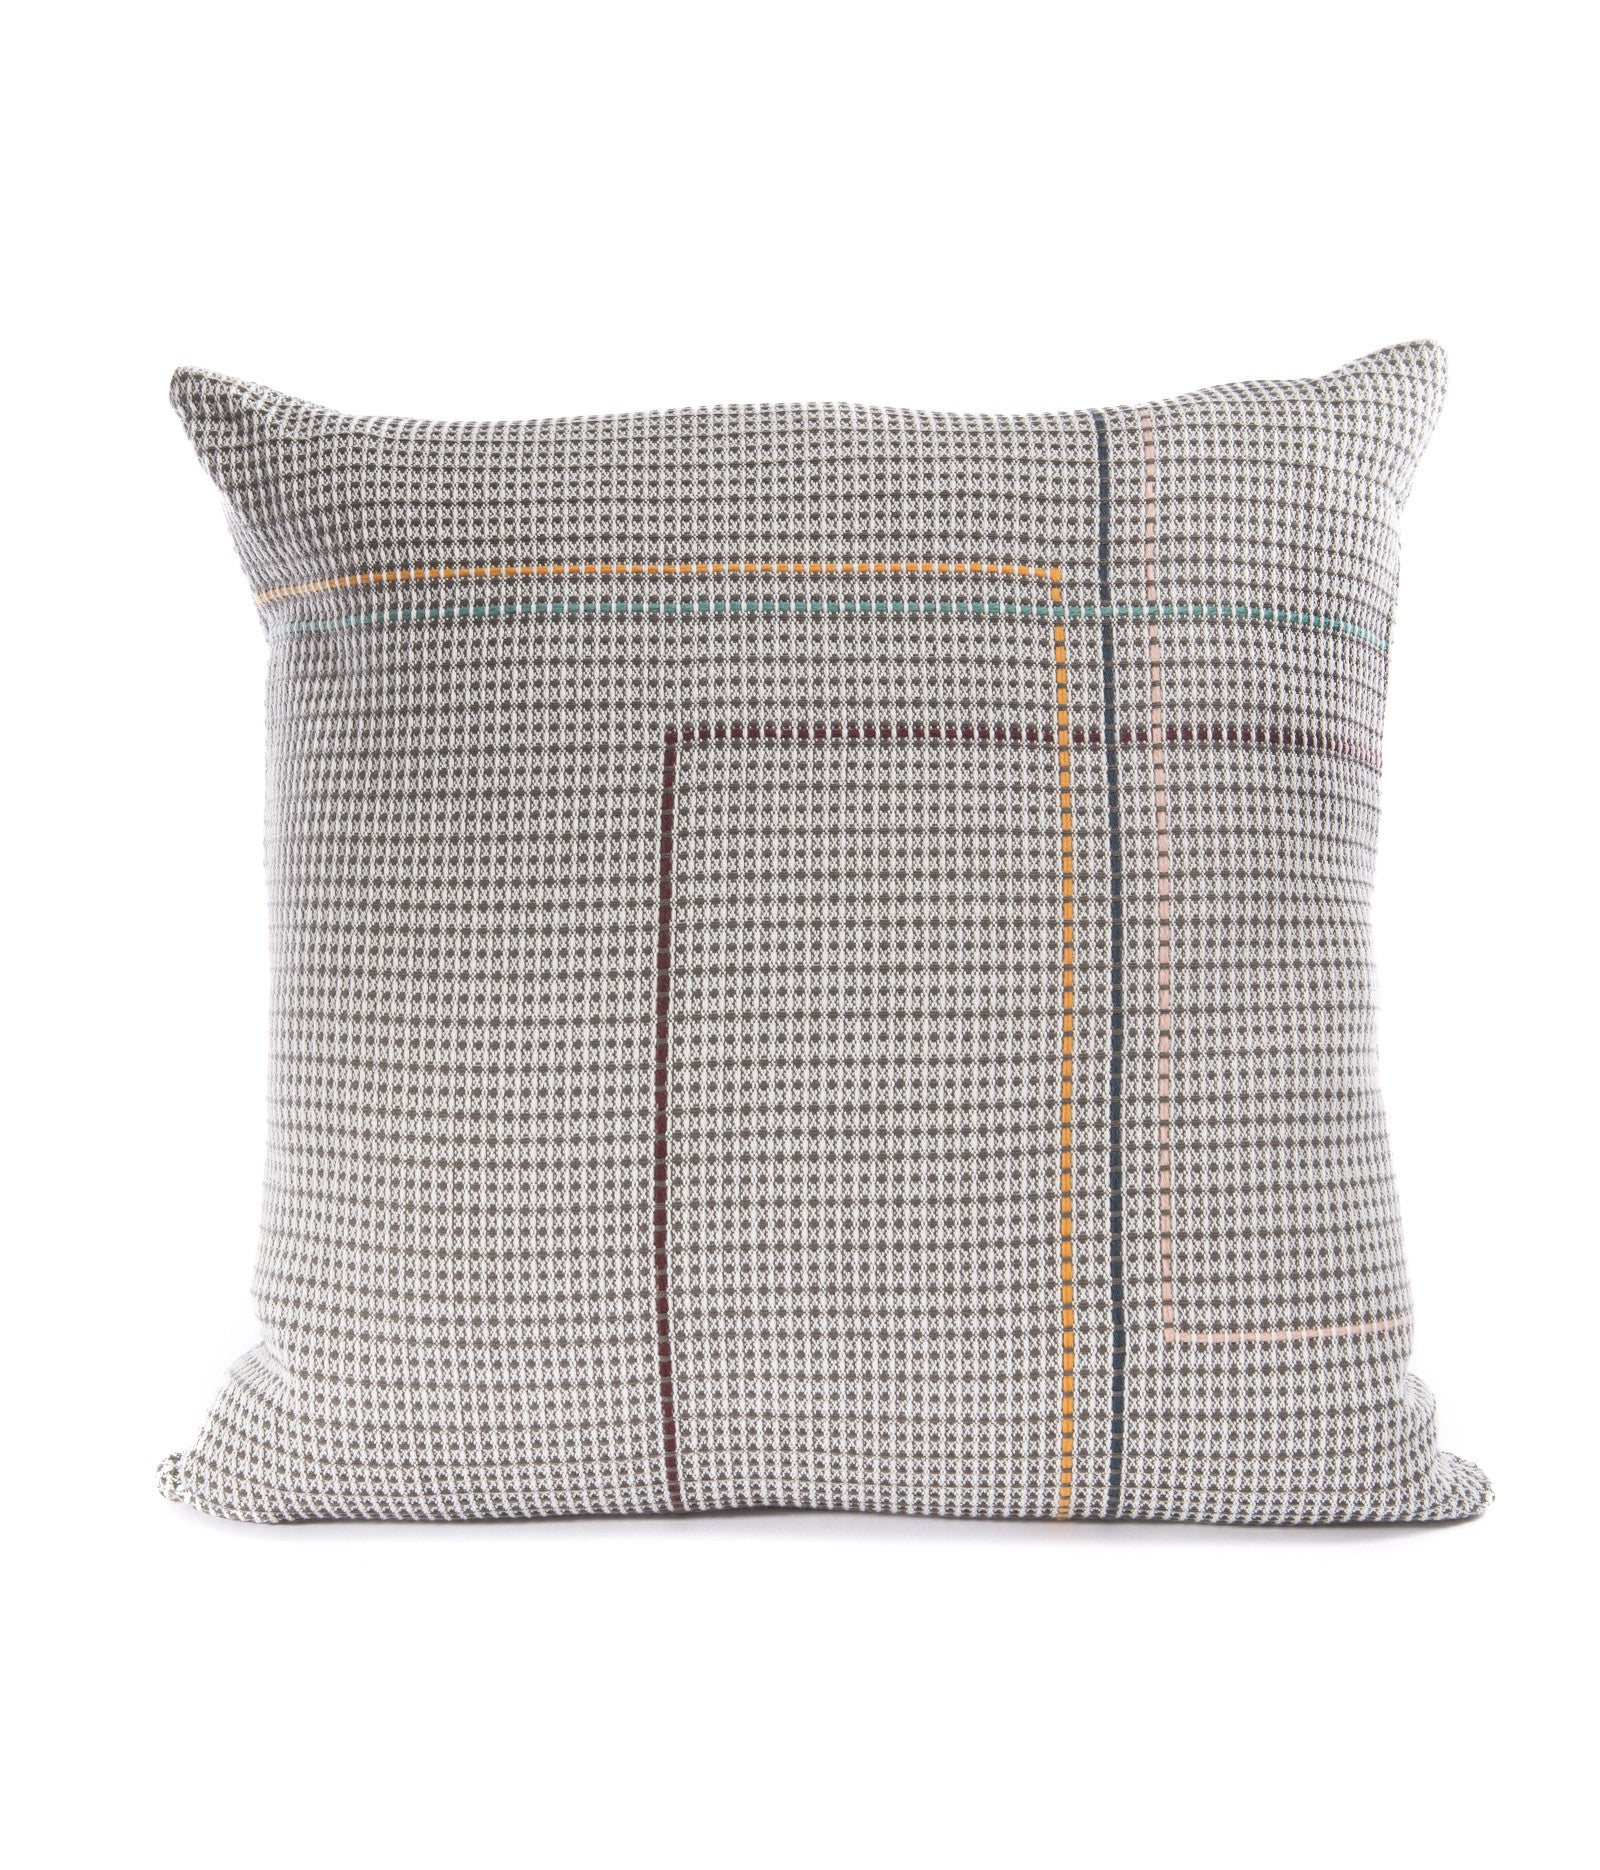 Hand Embroidered Talbot Cushion